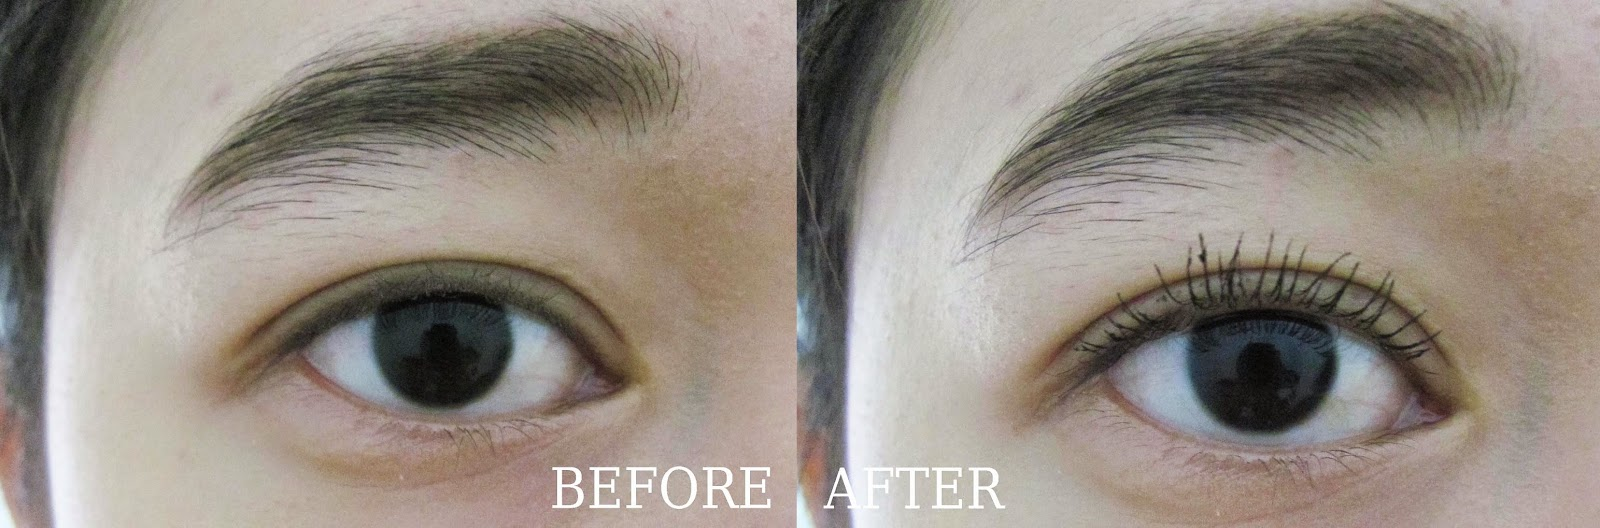 Before After Pemakaian Maybelline Volume Express Turbo Boost Mascara Waterproof